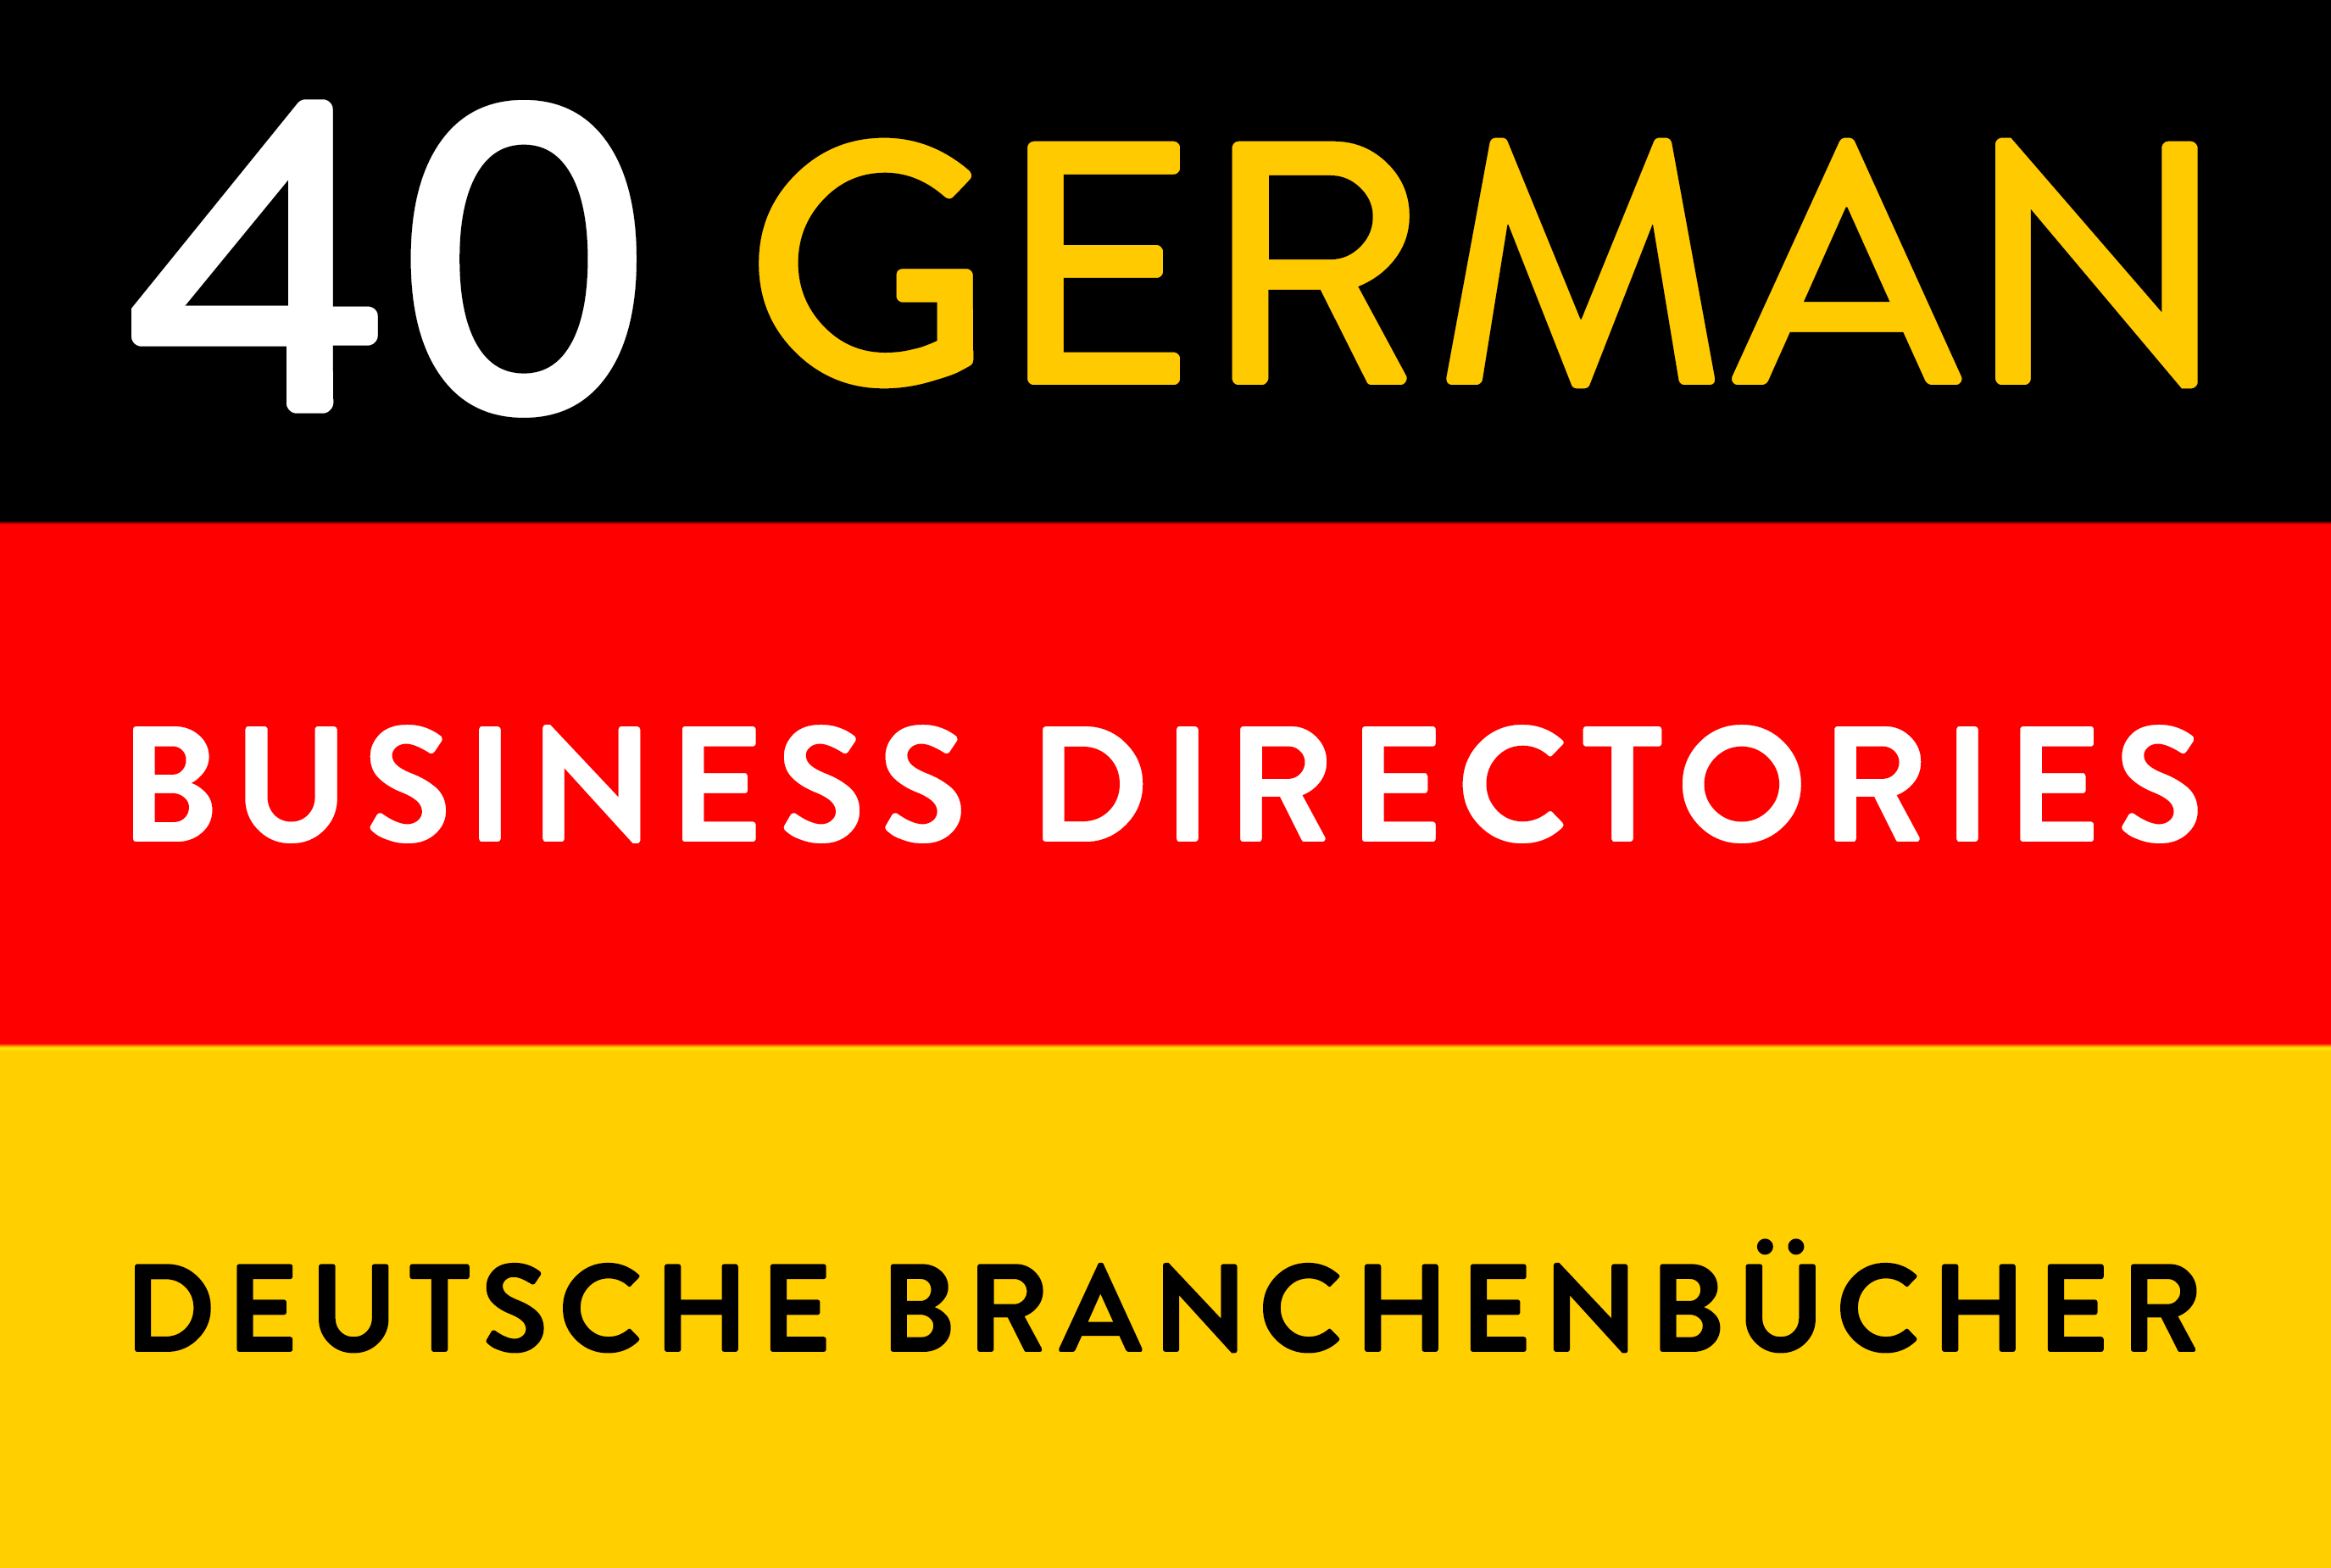 Manual submissions to 40 german deutsche business directories backlinks seo link building citations